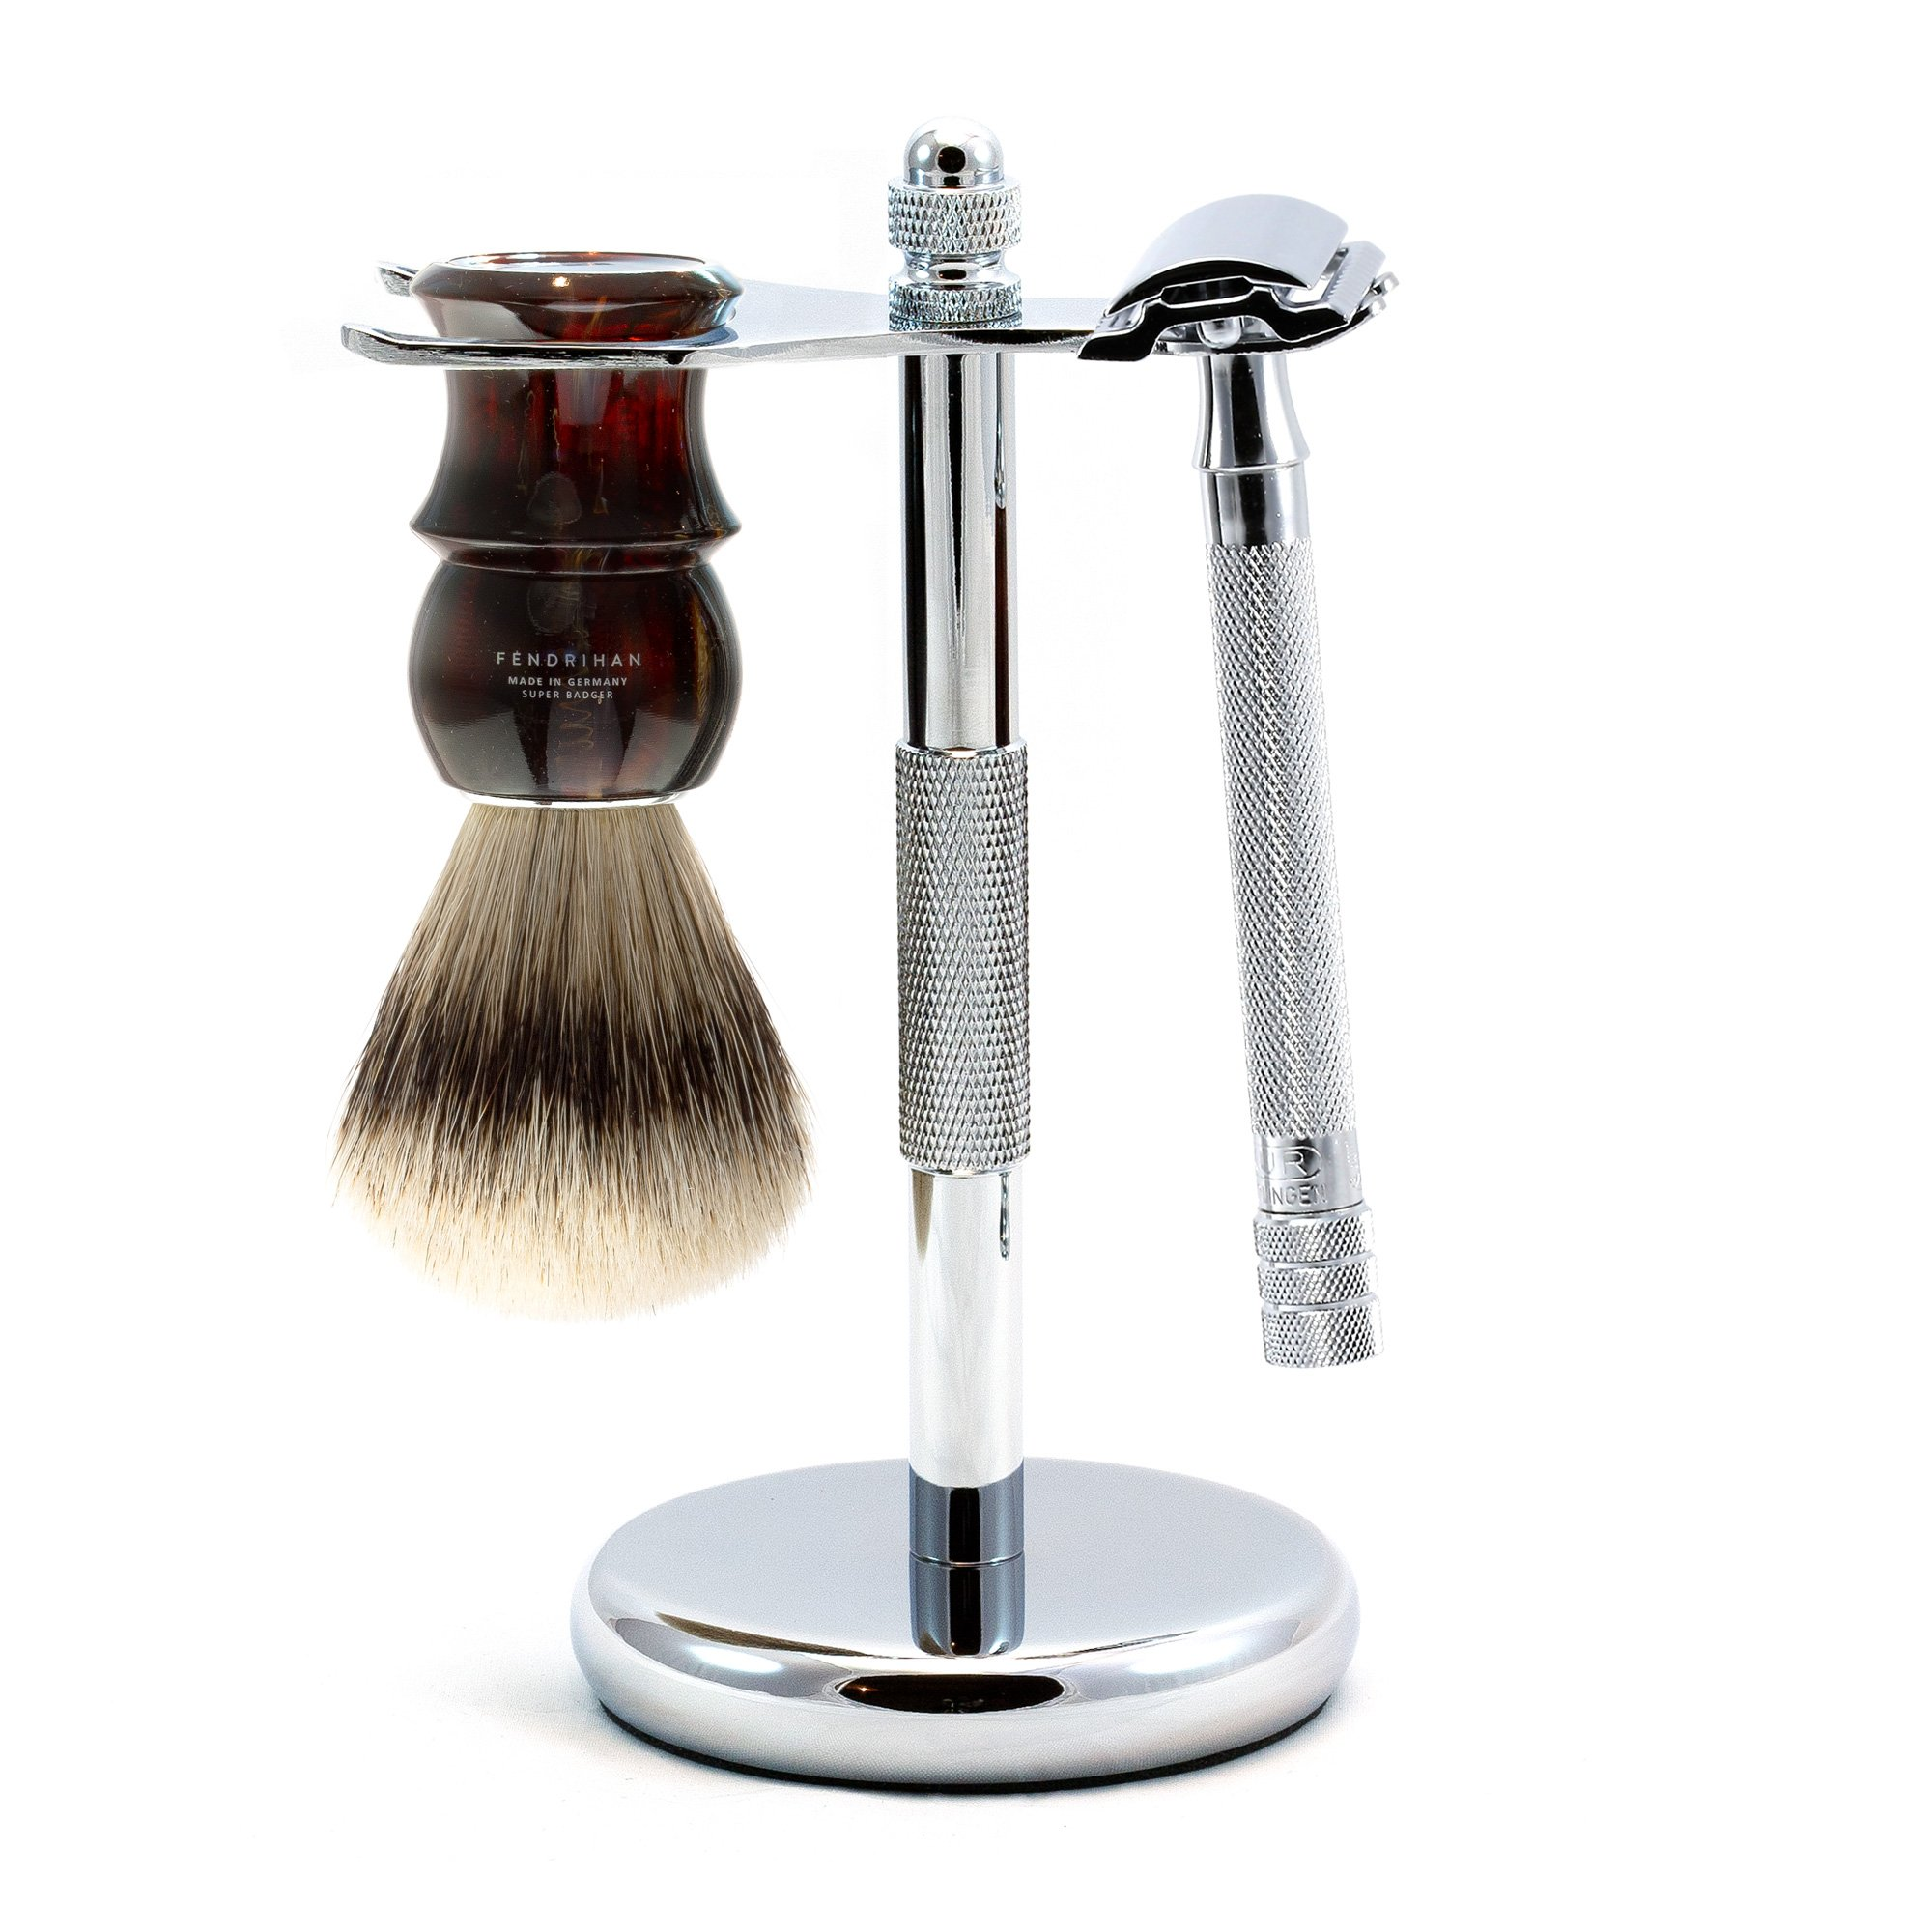 3-piece Shaving Set with Merkur 23c Long-handle Razor and Super Badger Brush, Made in Germany (Tortoise)